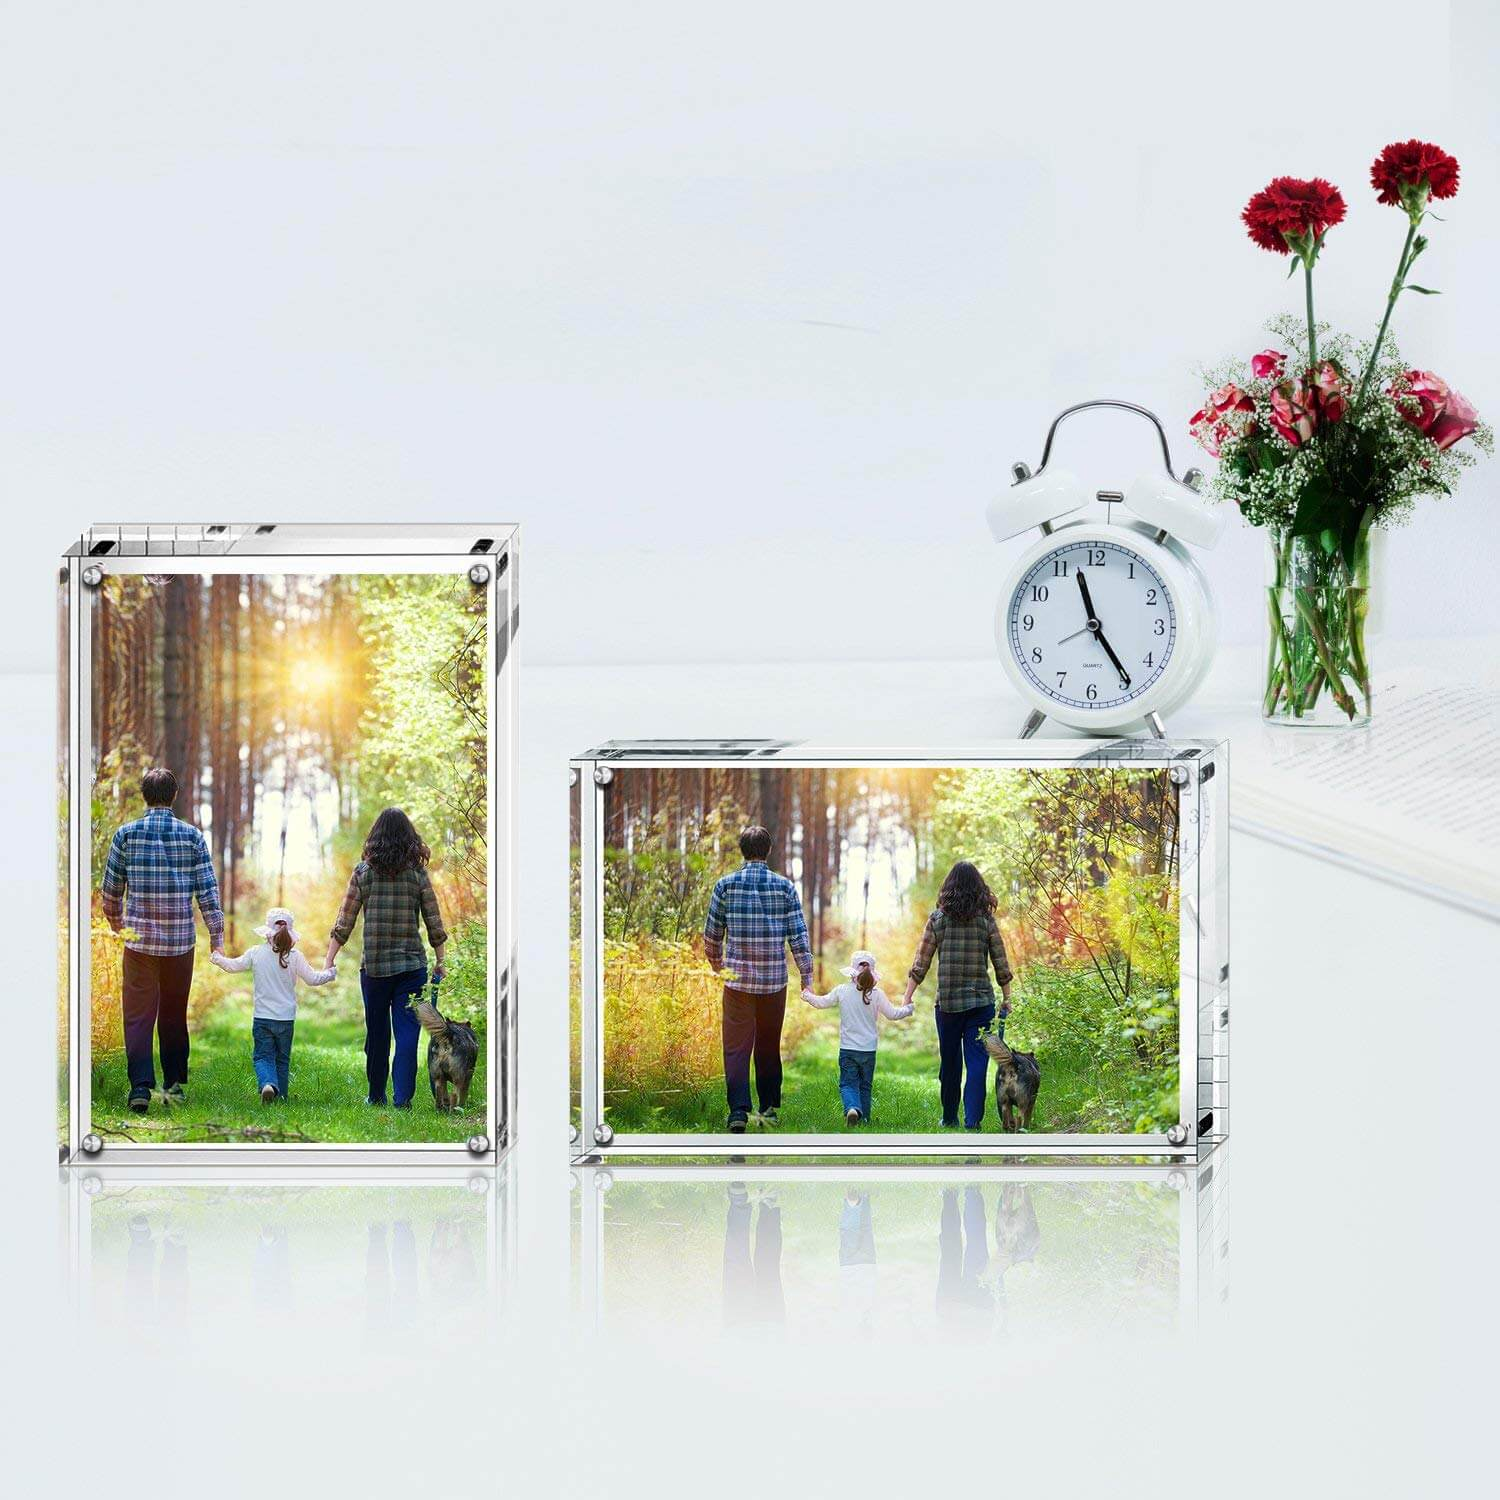 Acrylic Photo Frames, Stand with Magnets, Holds 5 X 7 Inches Pictures,10mm+10mm Thickness